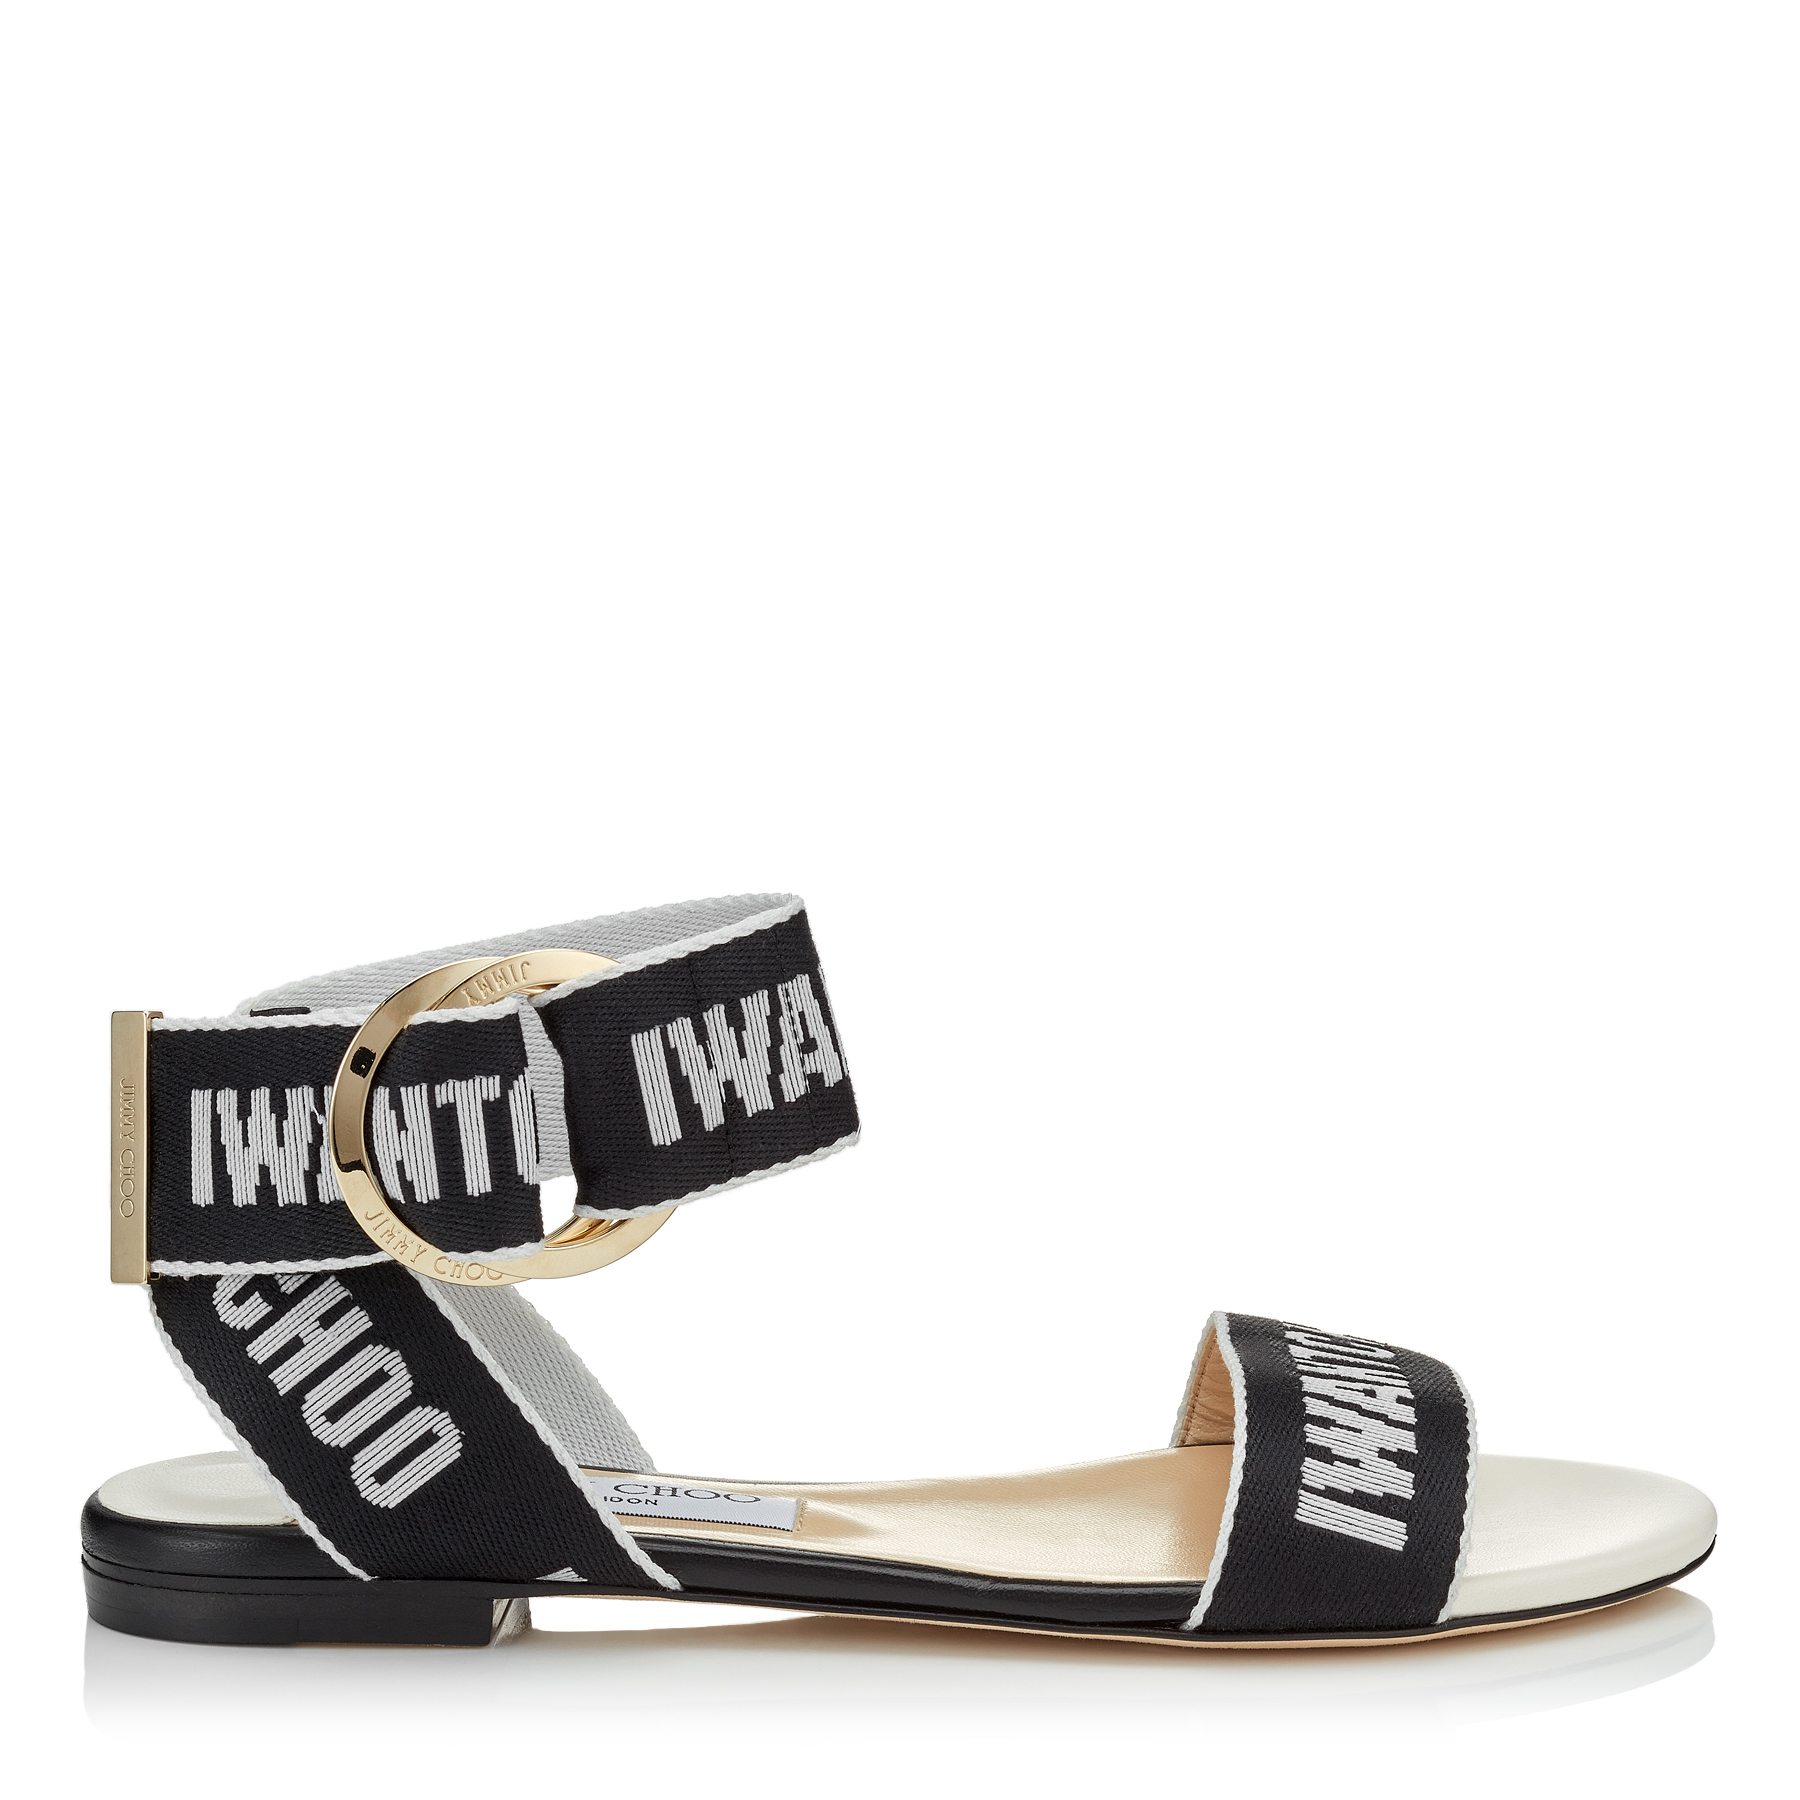 BREANNE FLAT Black and Chalk Logo Tape Sandals by Jimmy Choo